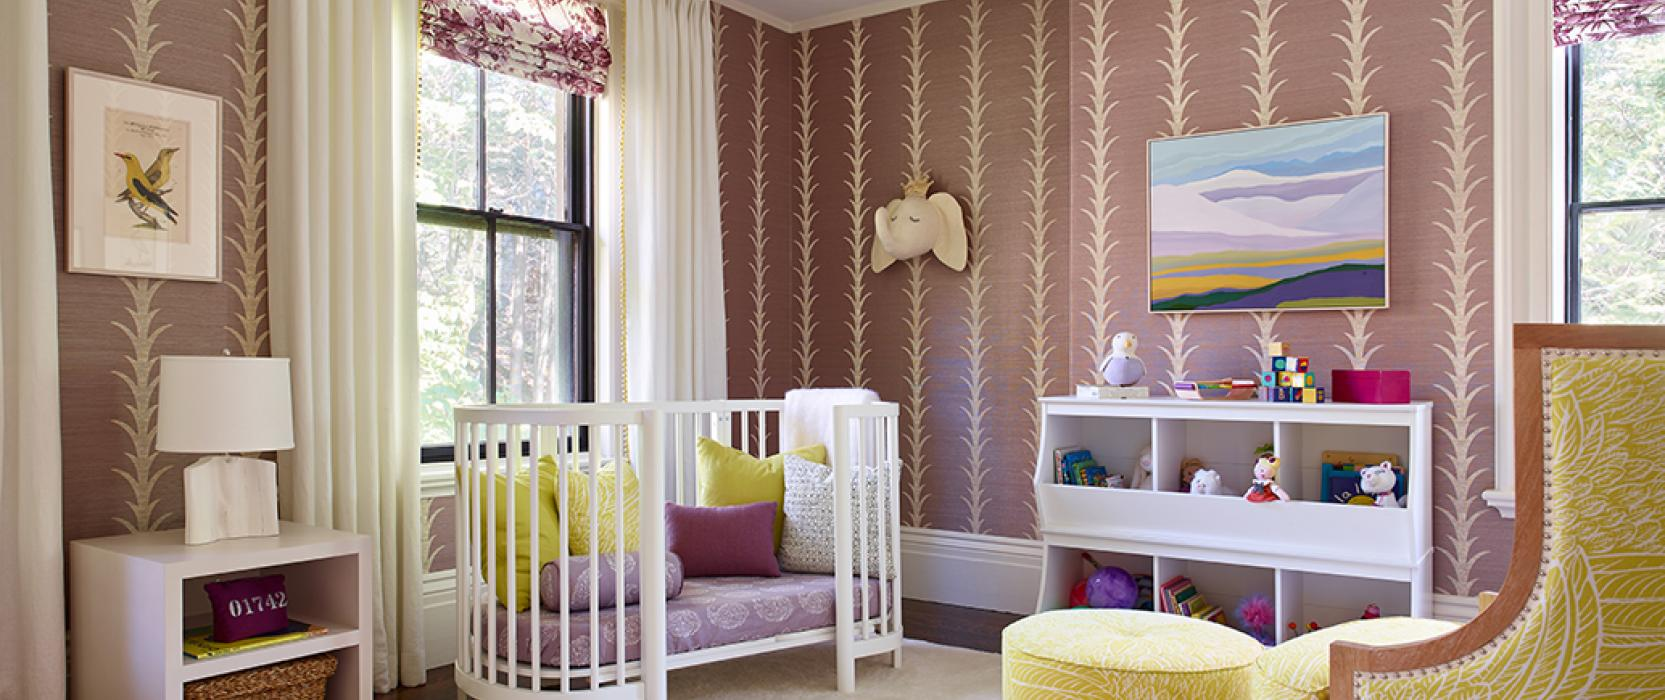 girls nursery room interior design